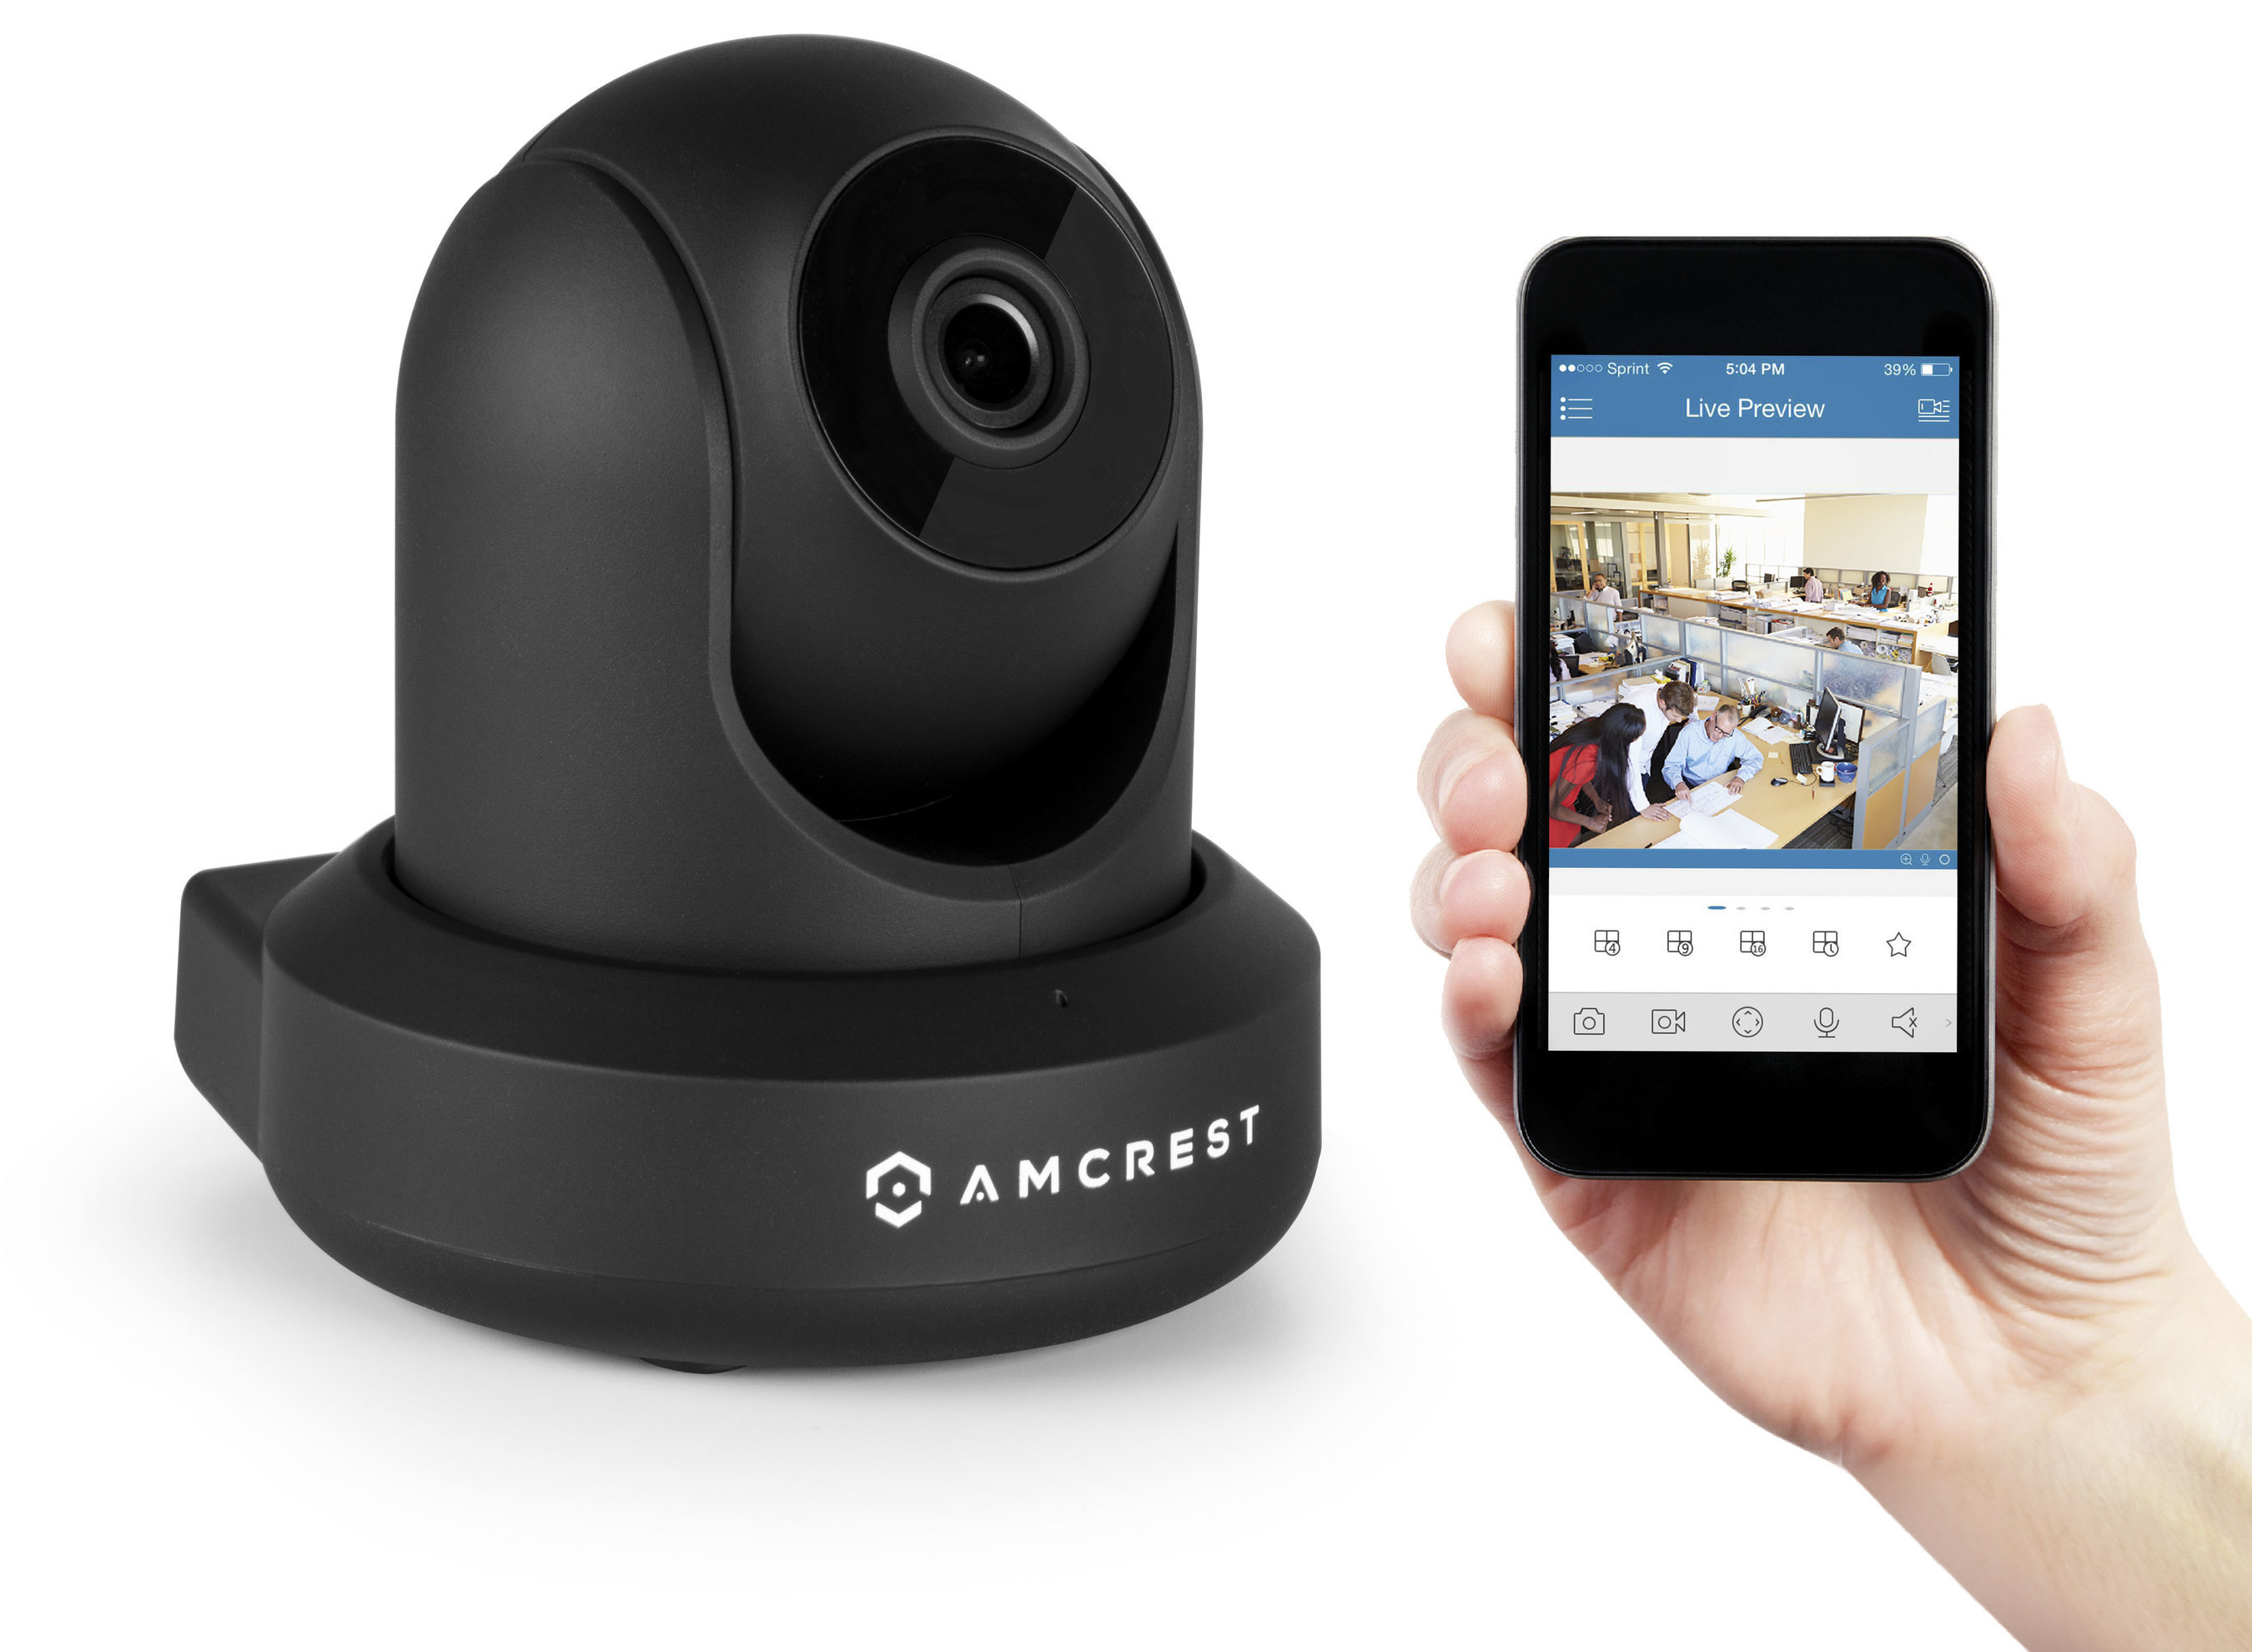 Amcrest 1080P WiFi Video Security IP Camera (IP2M-841W) with Pan/Tilt, Two-Way Talk, Plug & Play Setup, Optional Cloud Recording, Full HD 1080P (1920TVL) @30fps, Super Wide 90� FOV, and More